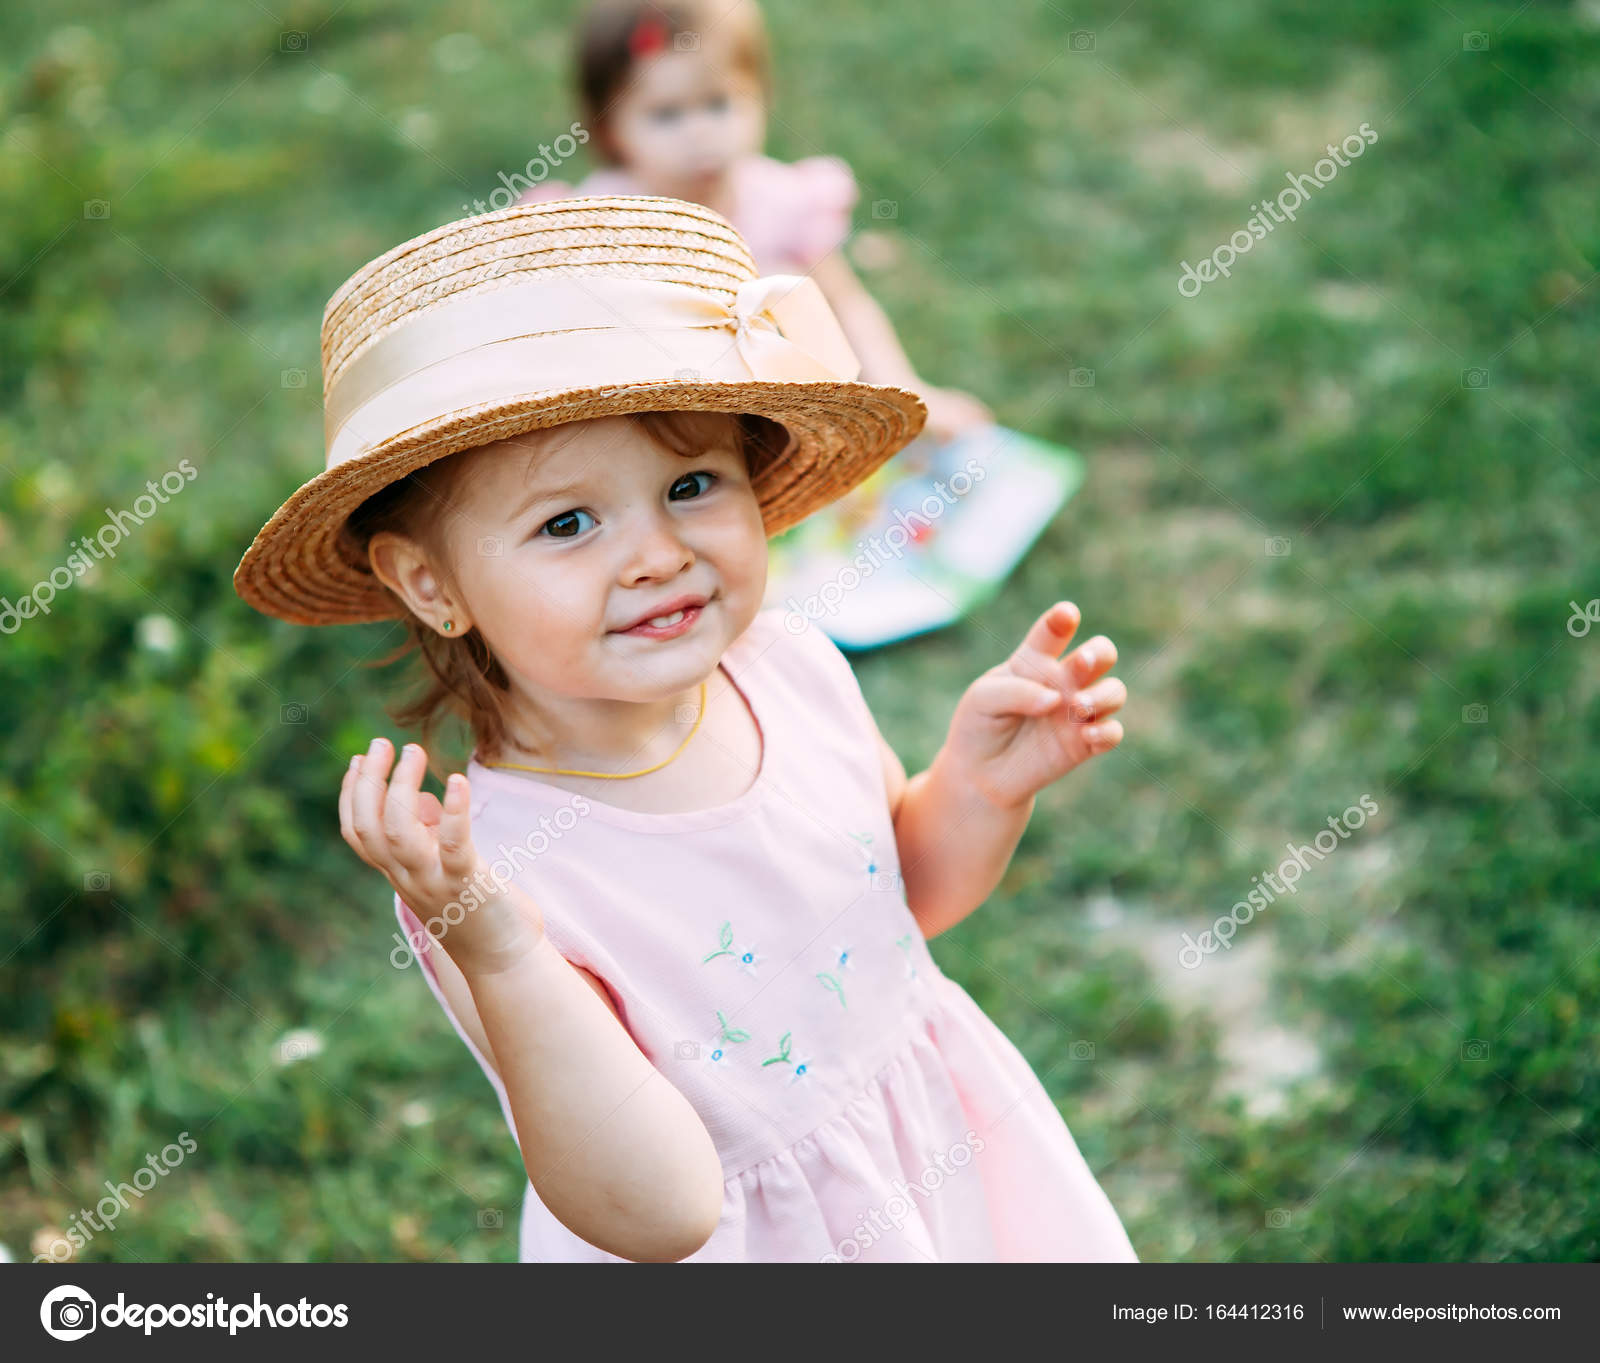 cute baby girl portrait.little girl in a straw hat smiles and looks